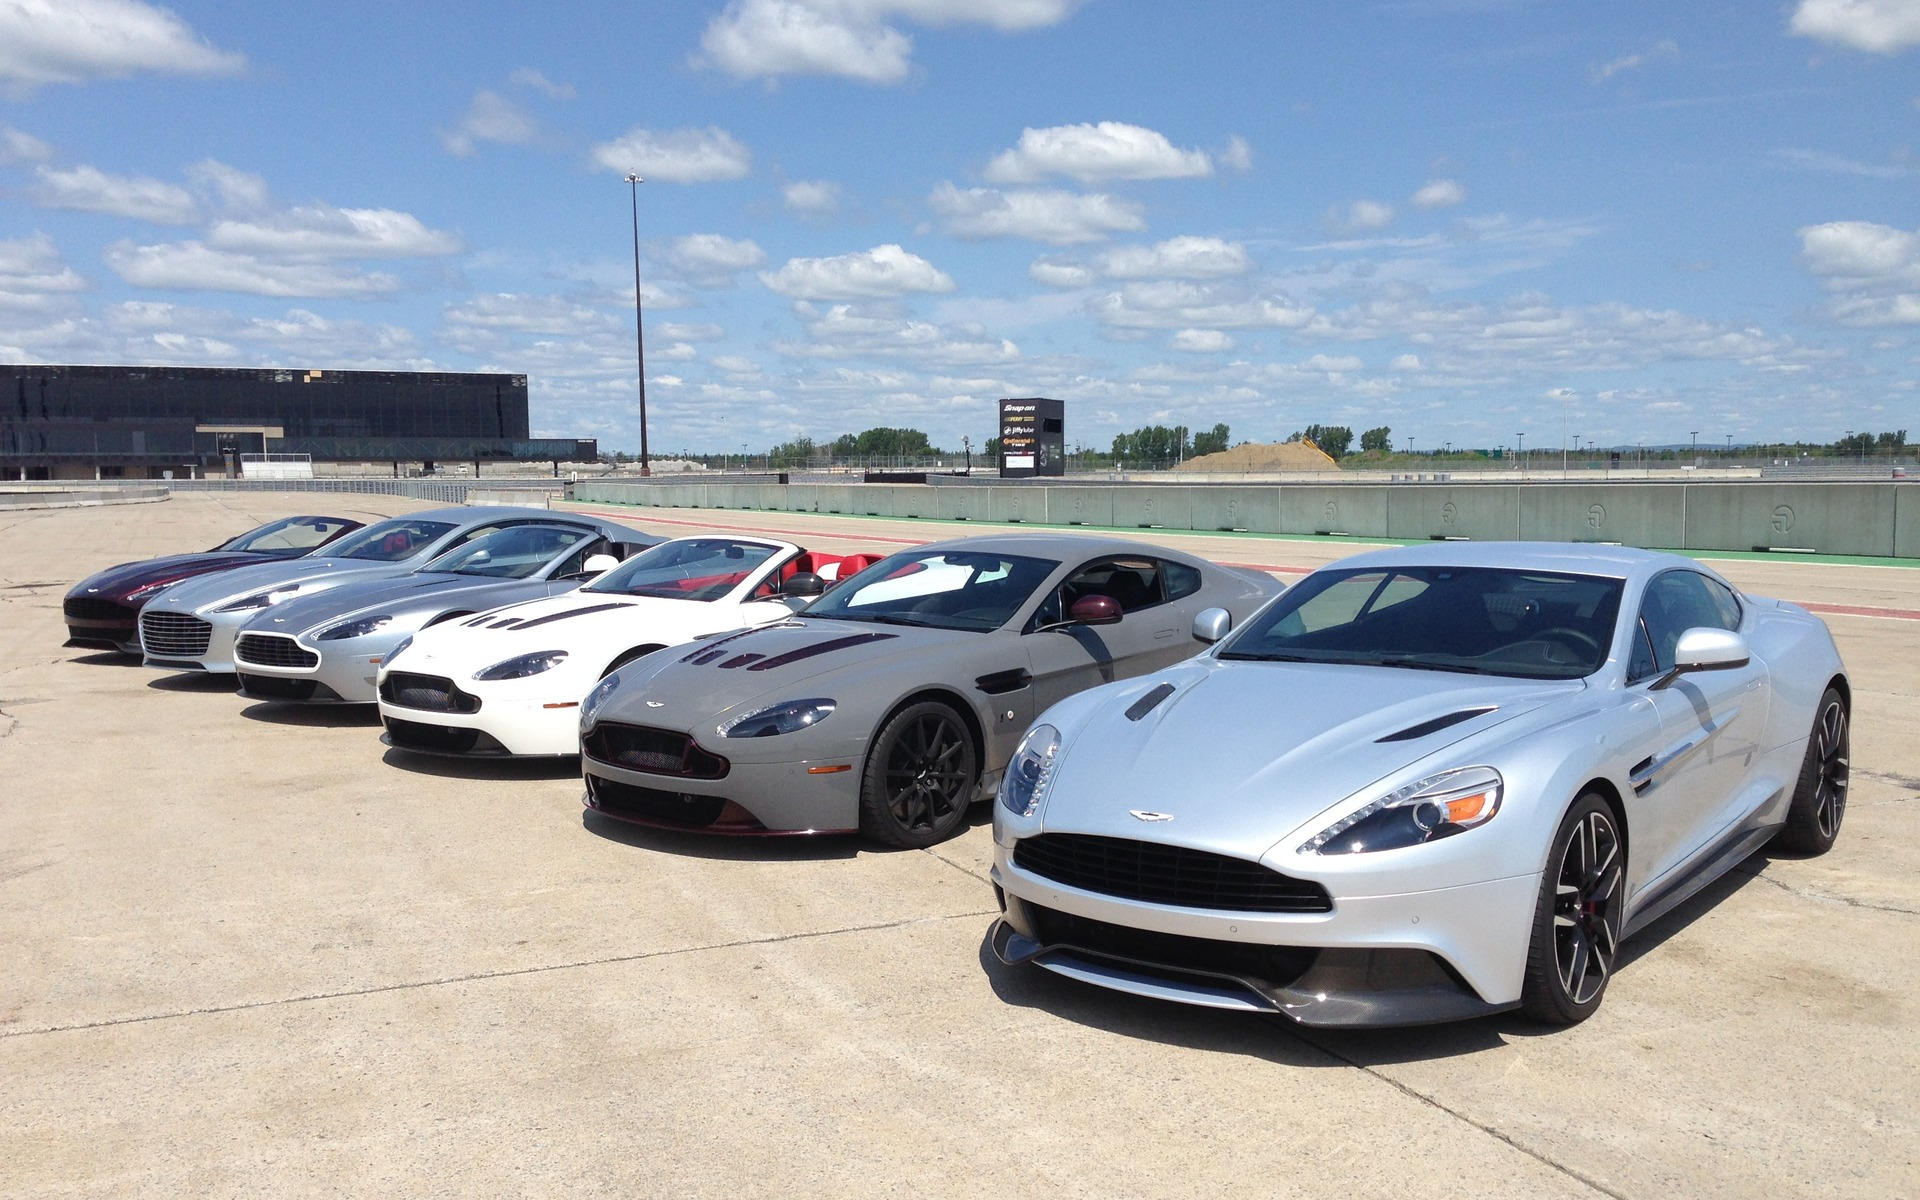 Aston Martin Festival At ICAR True Thoroughbreds - Aston martin lineup